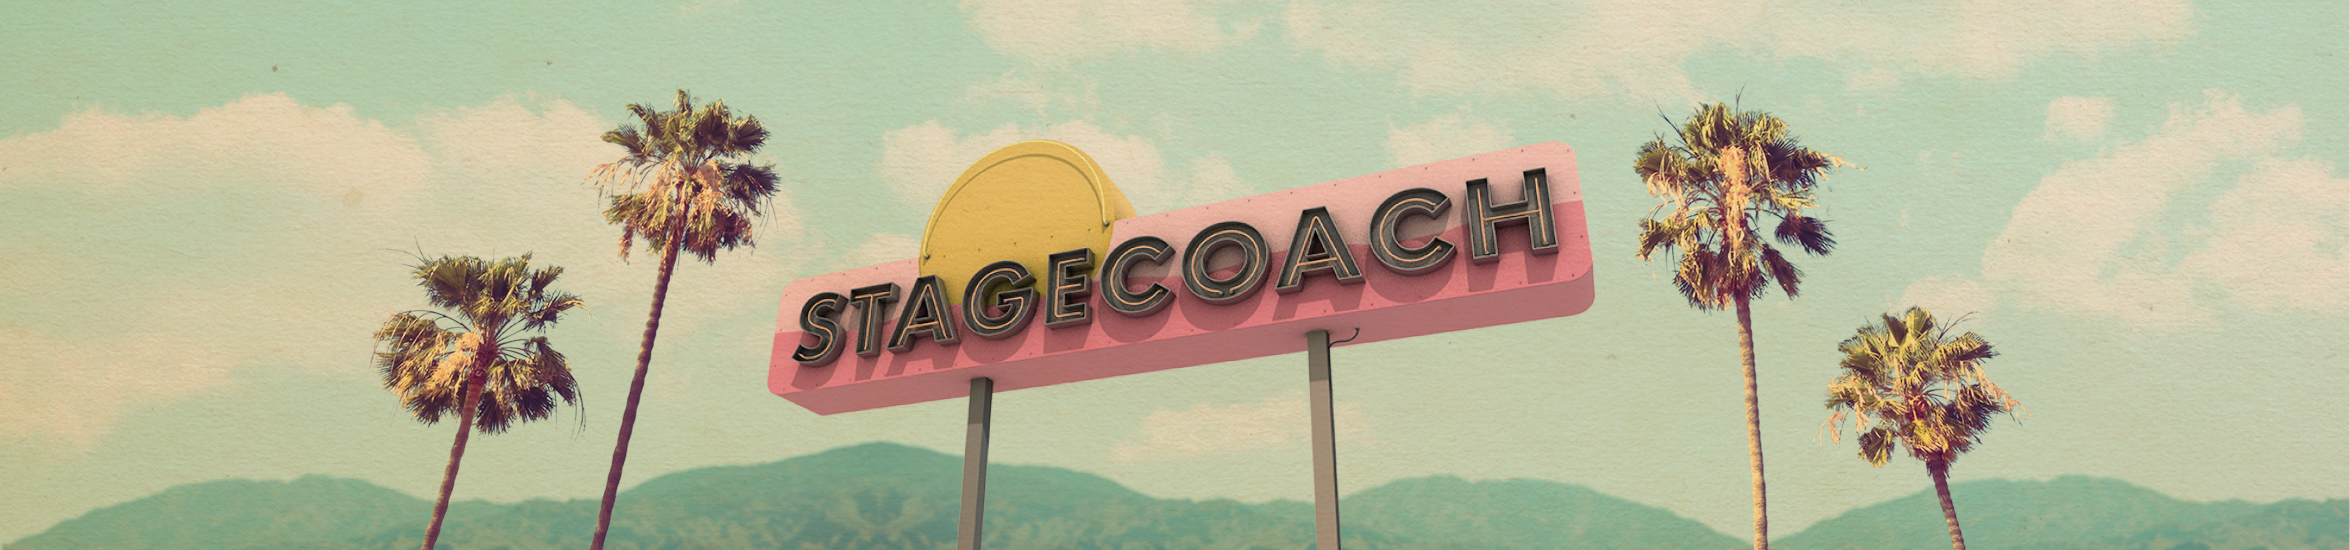 Stagecoach 2020 FAQs